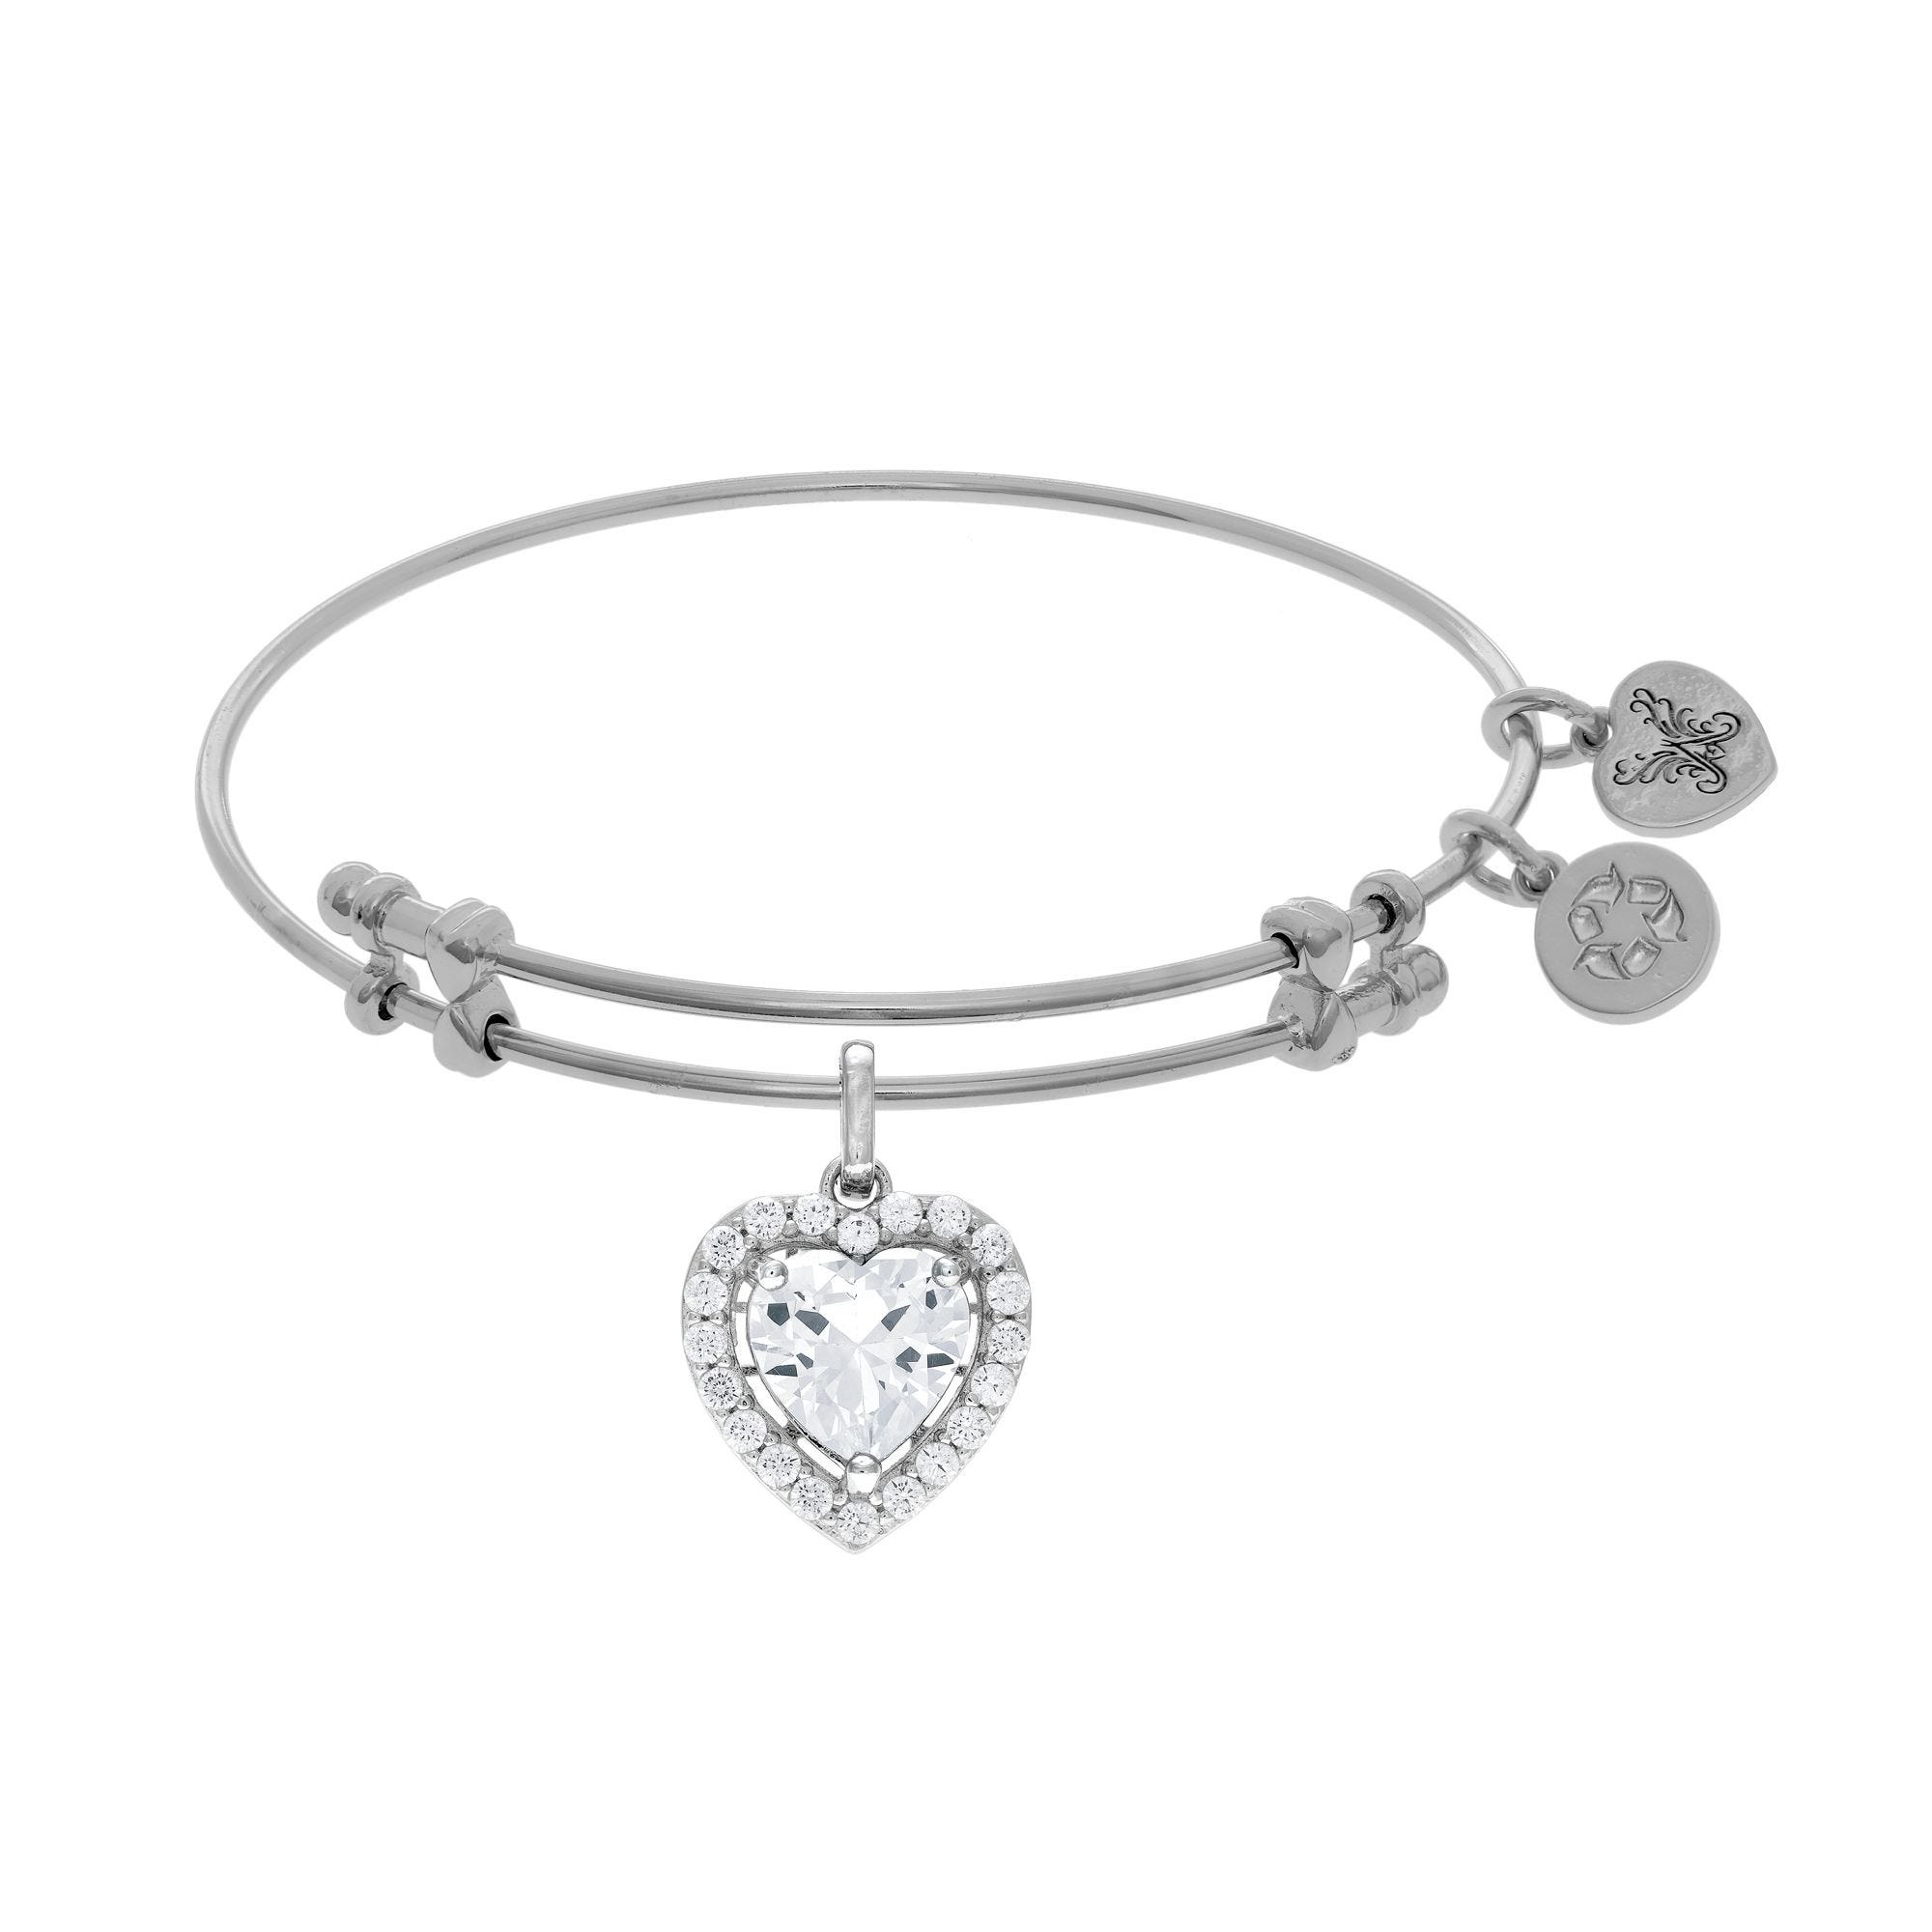 CZ Heart Halo Charm Bangle Bracelet in White Brass